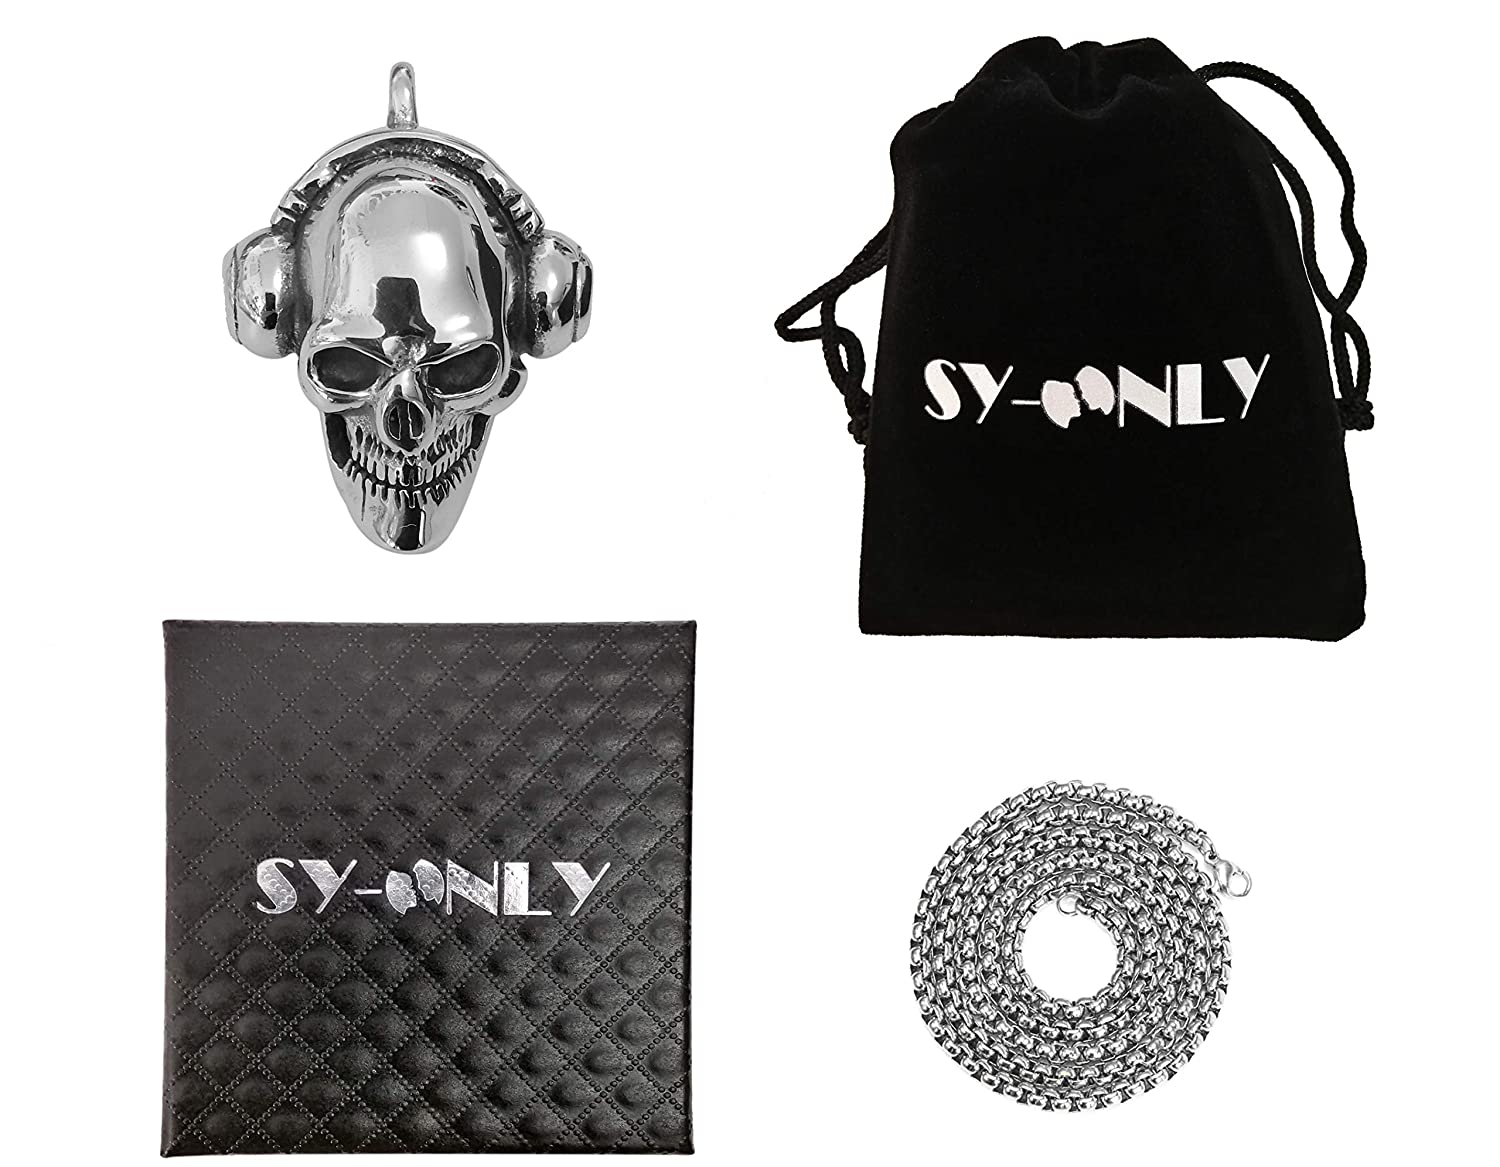 SY-Only Stainless Steel Skull Necklace Punk Rock or Hip hop,24 inches Polished Chain Rock Necklace for Men